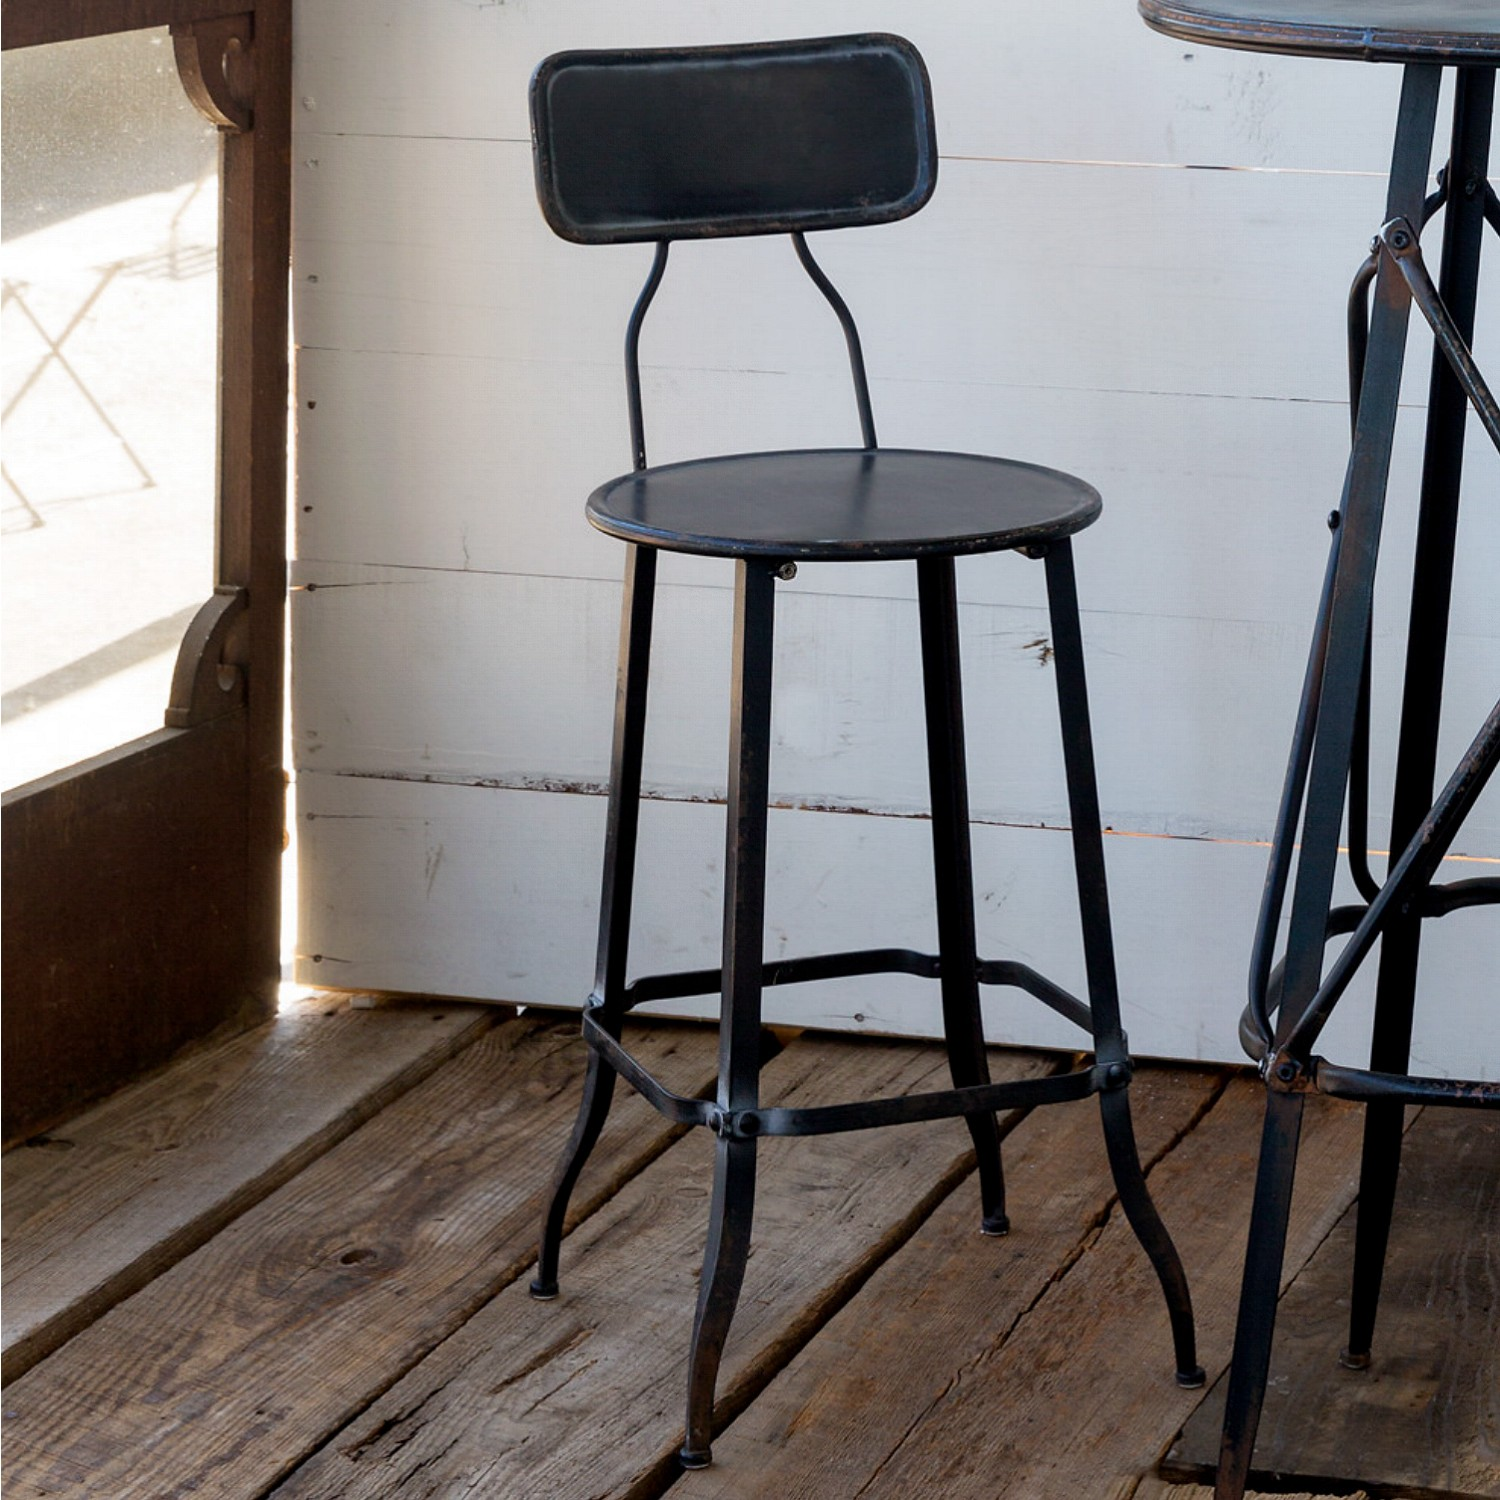 Rivet Bar Stool Aged Black Paint for Kitchen Counter Sold as Pairs